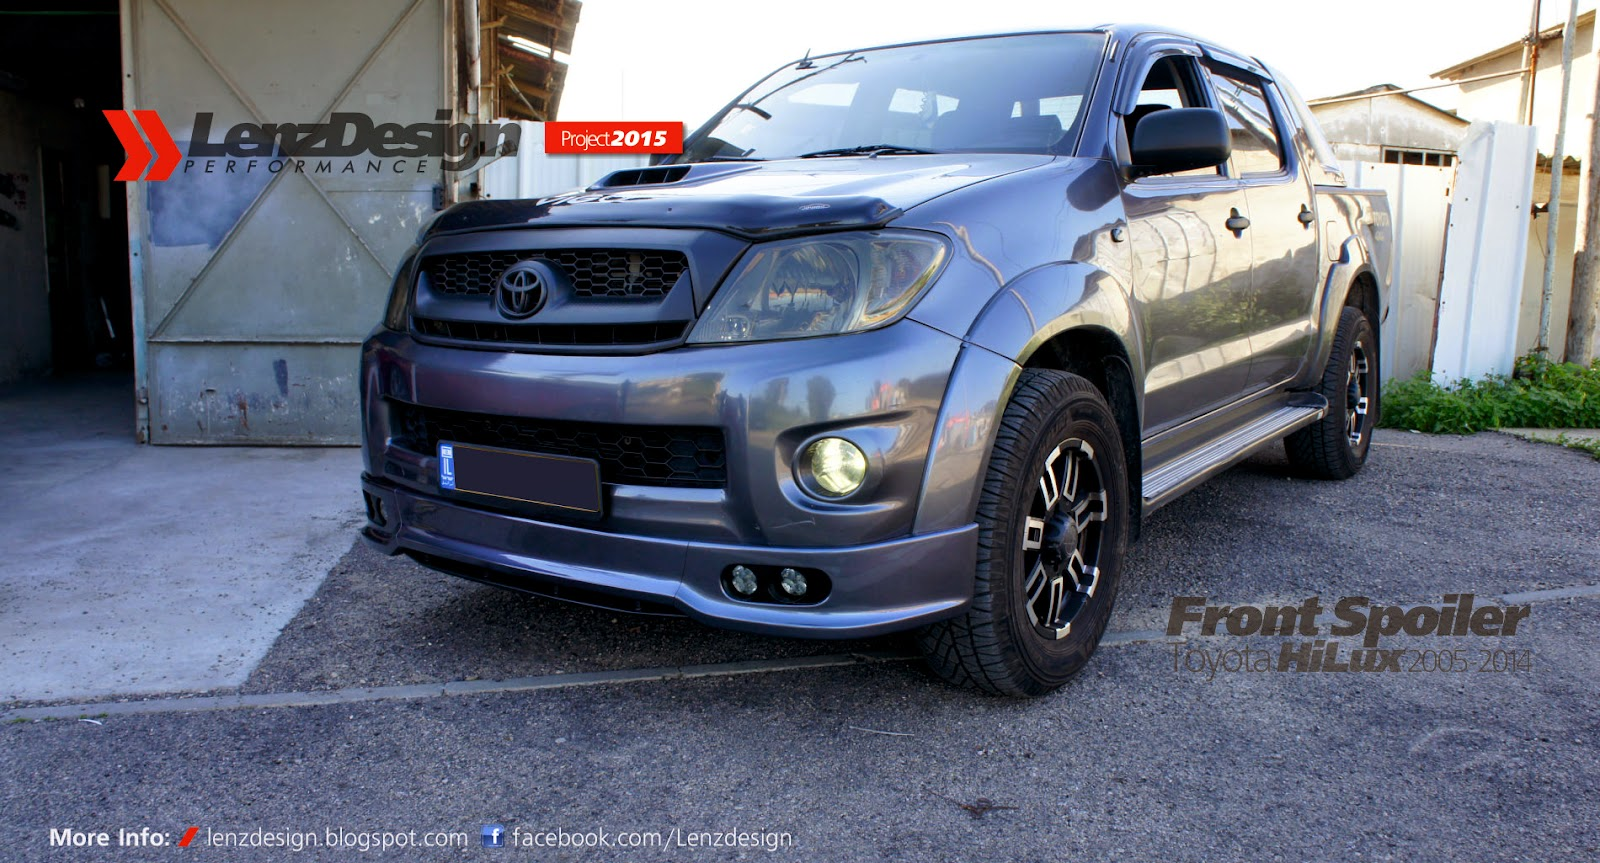 toyota hilux 2005 2014 body kit lenzdesign performance. Black Bedroom Furniture Sets. Home Design Ideas